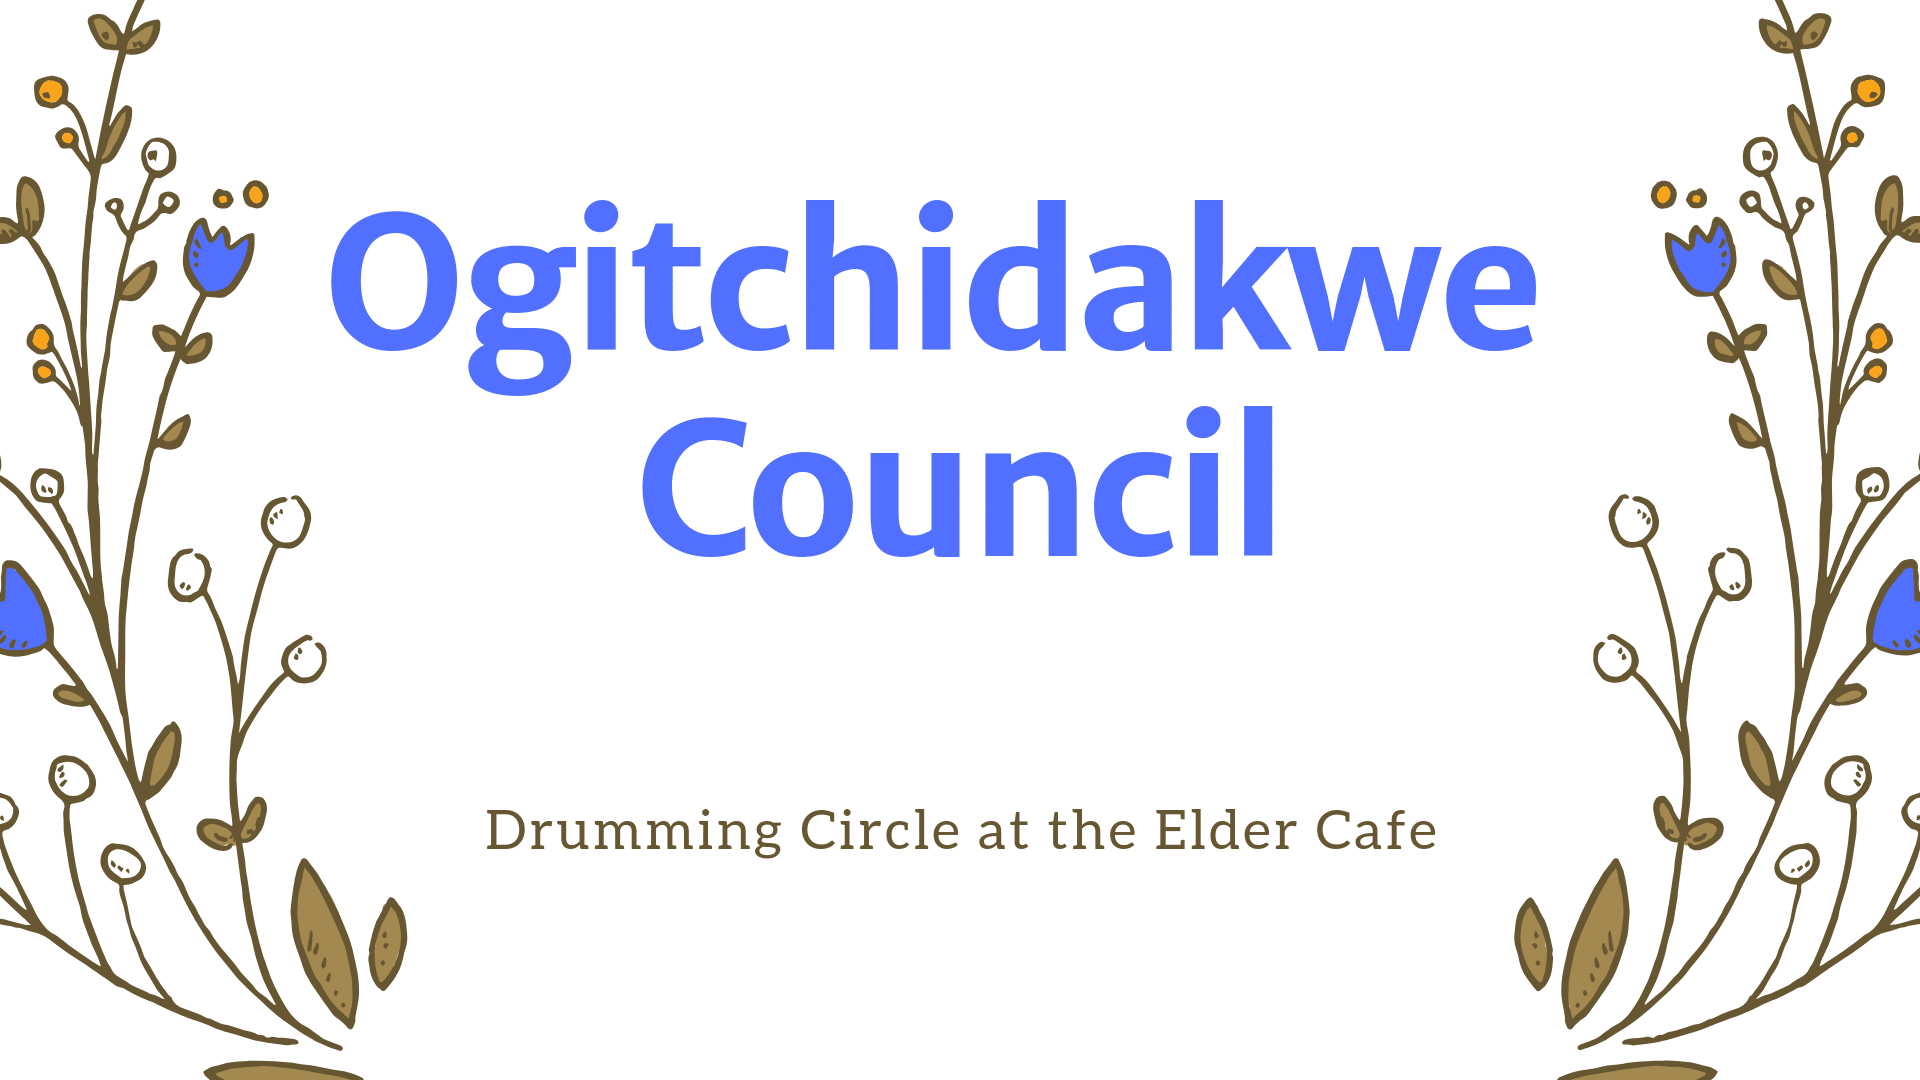 Blue and brown flowers. Text reads: Ogitchidakwe Council. Drumming circle at the Elder Cafe.